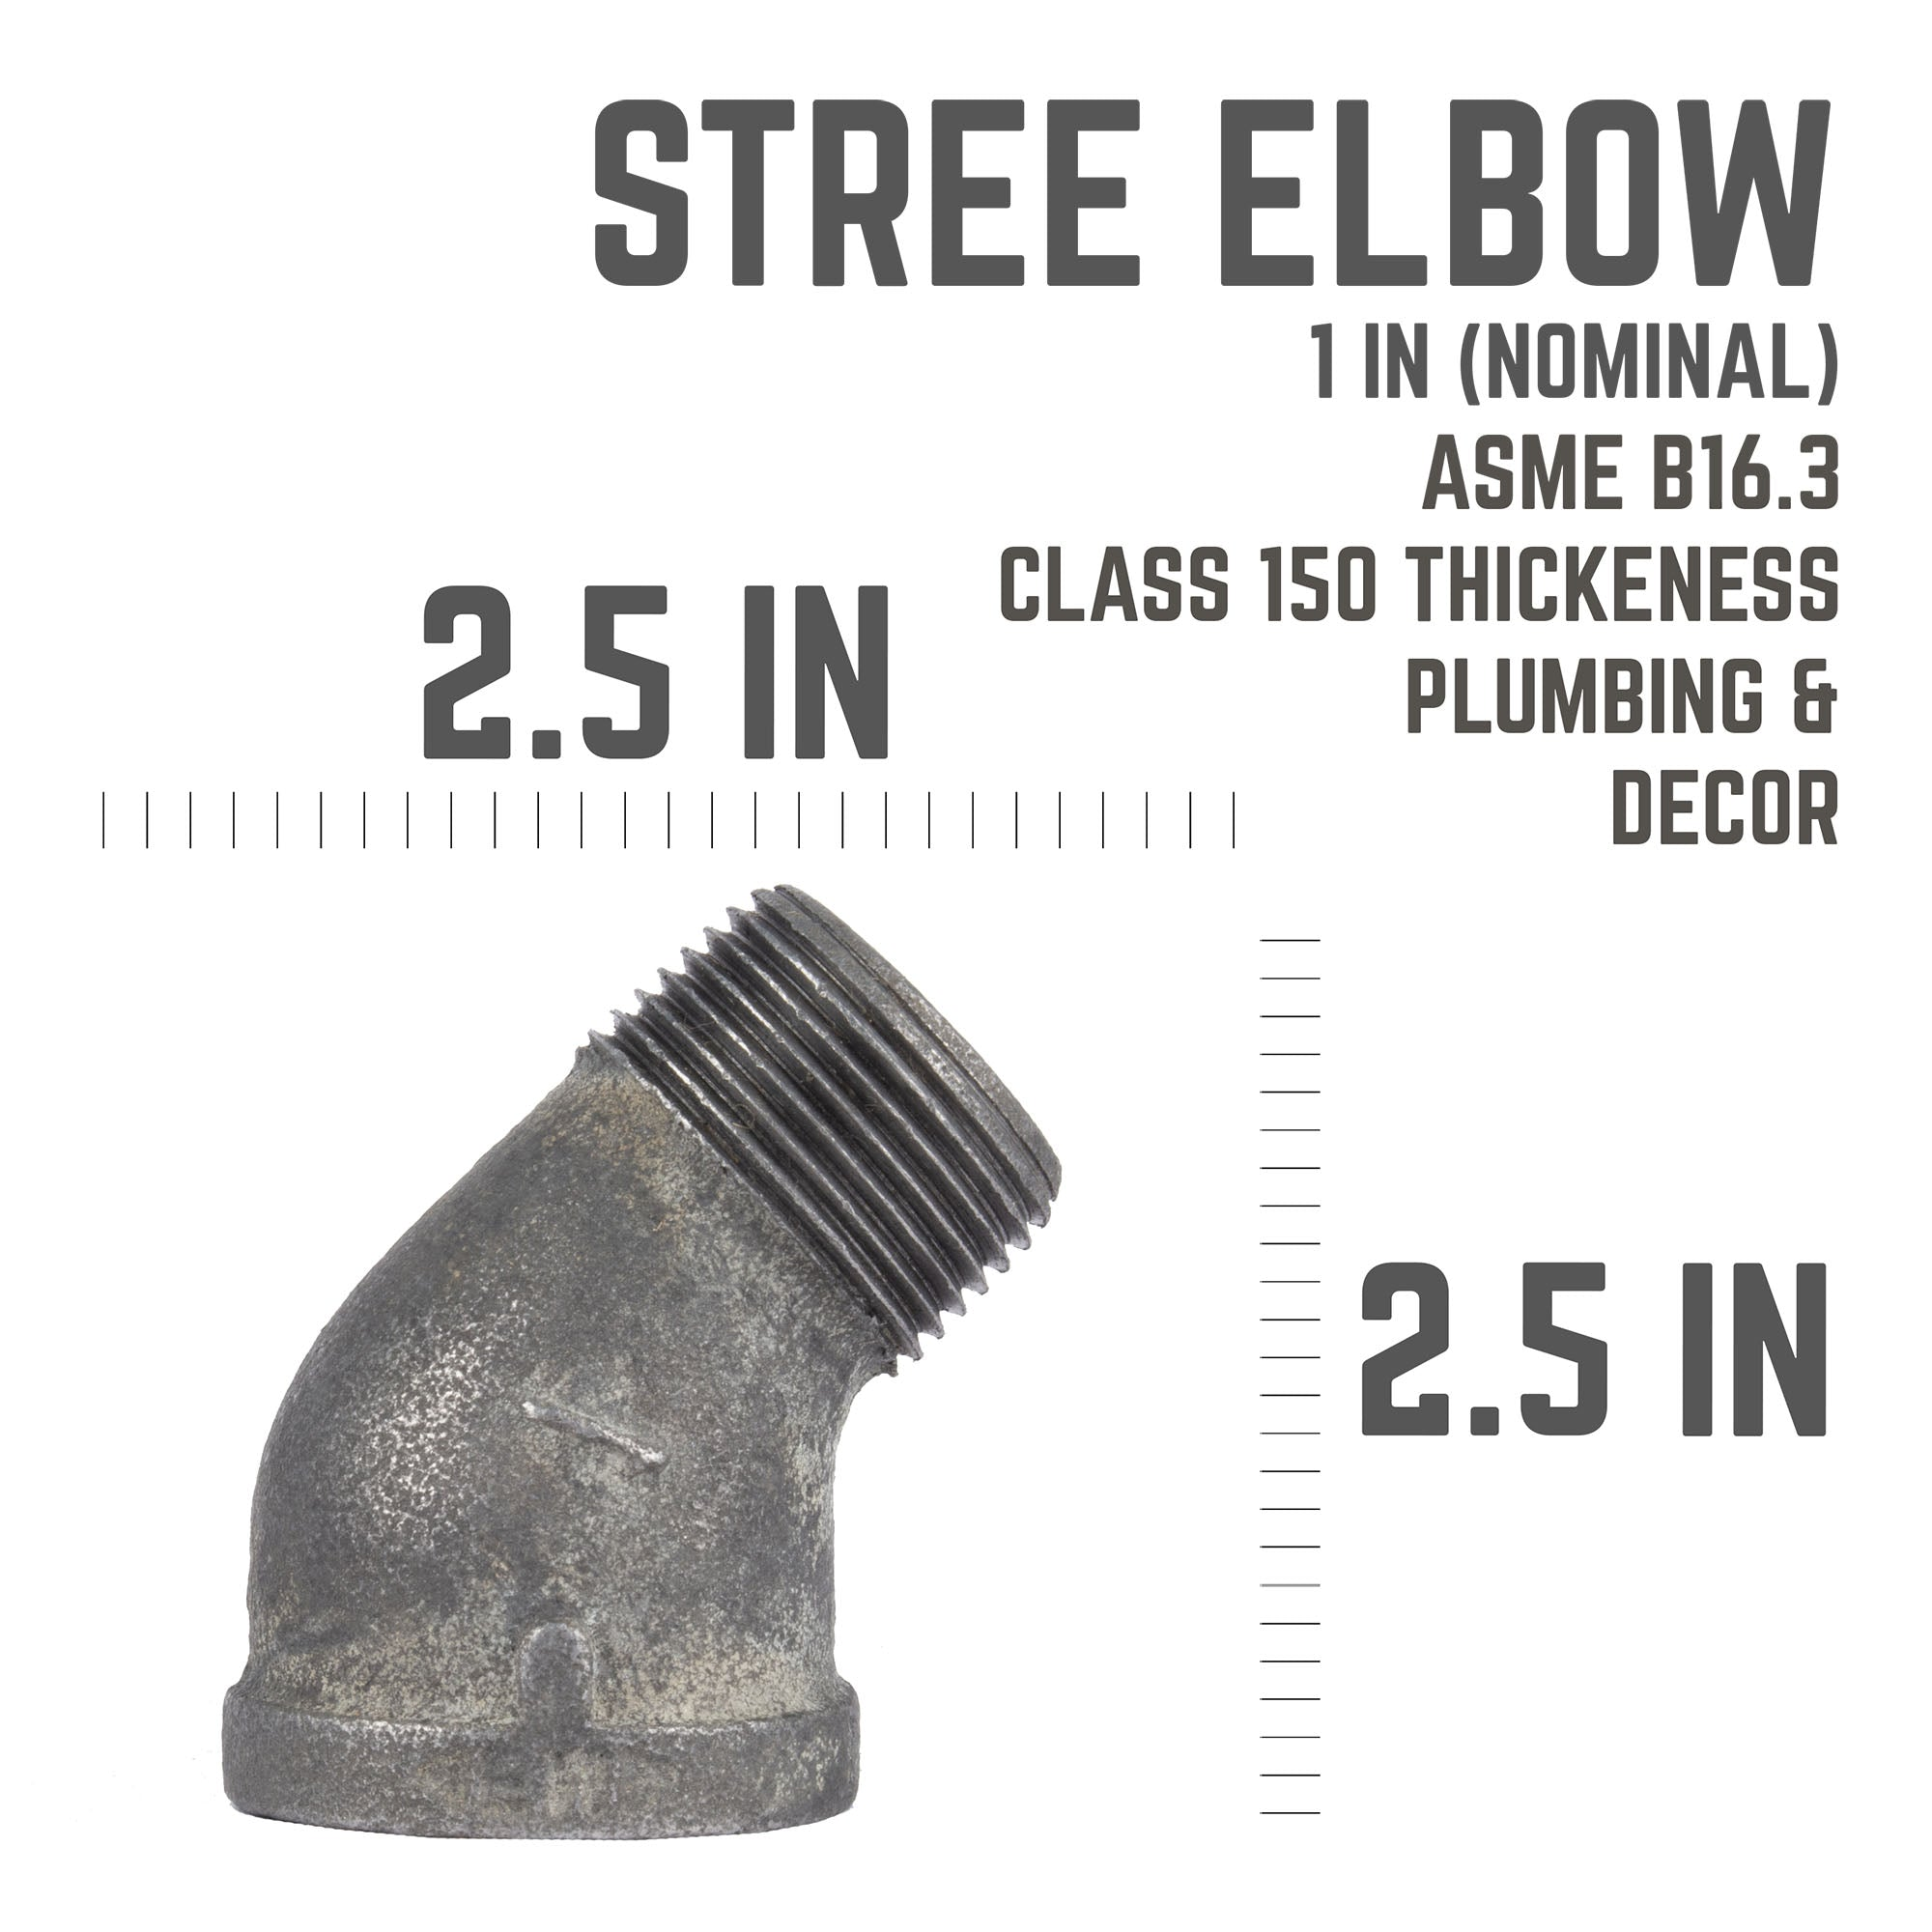 1 In  45 Street Elbow - Pipe Decor